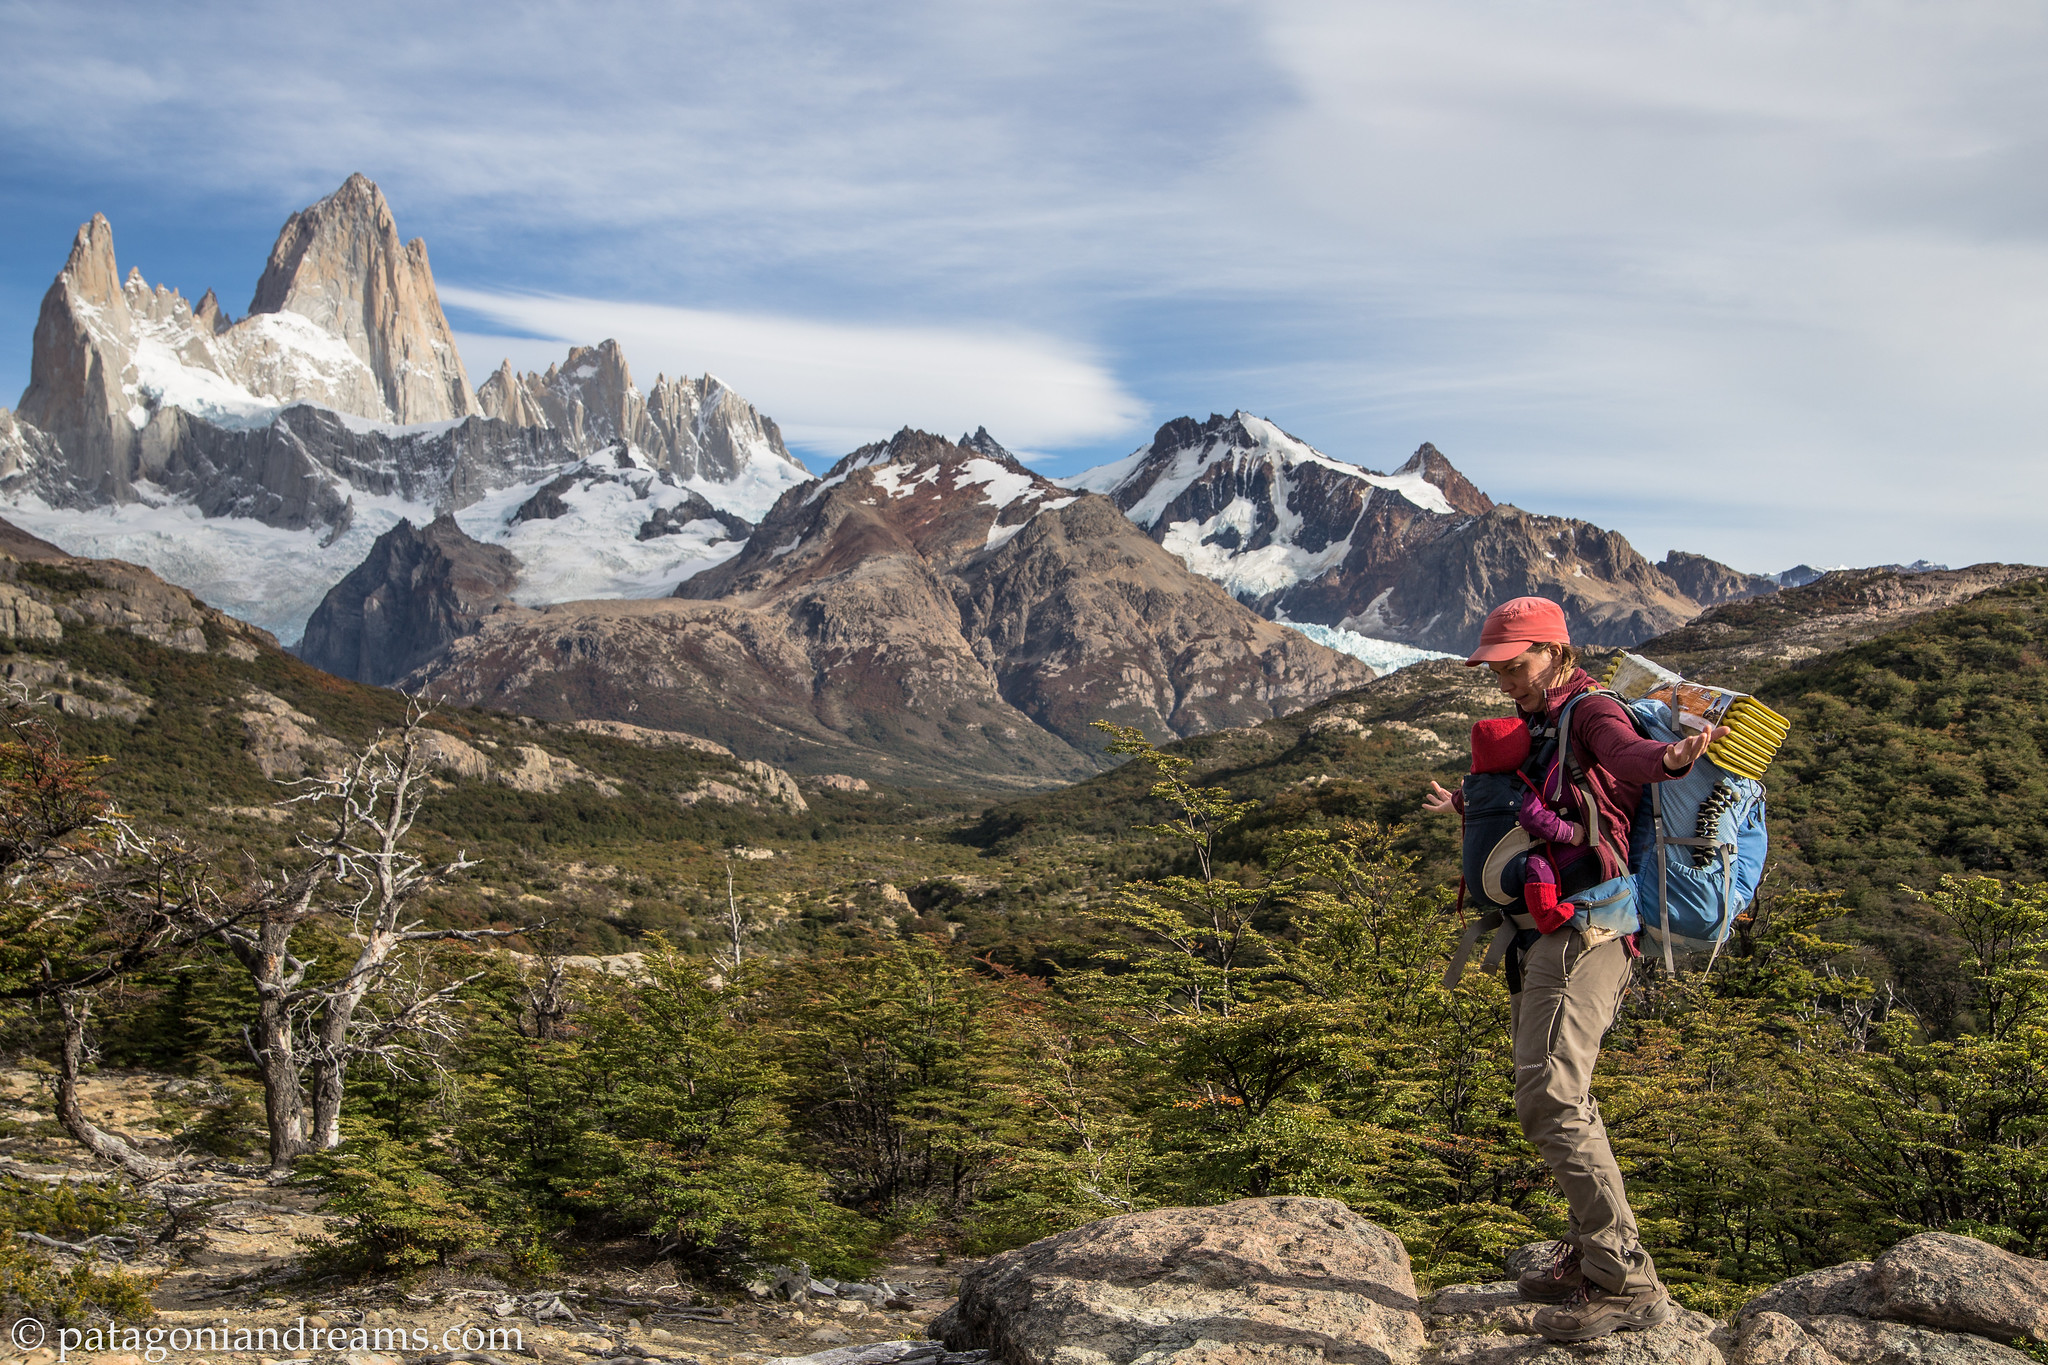 We will be back soon, day 4, NP Los Glaciares, Patagonia, Argentina.